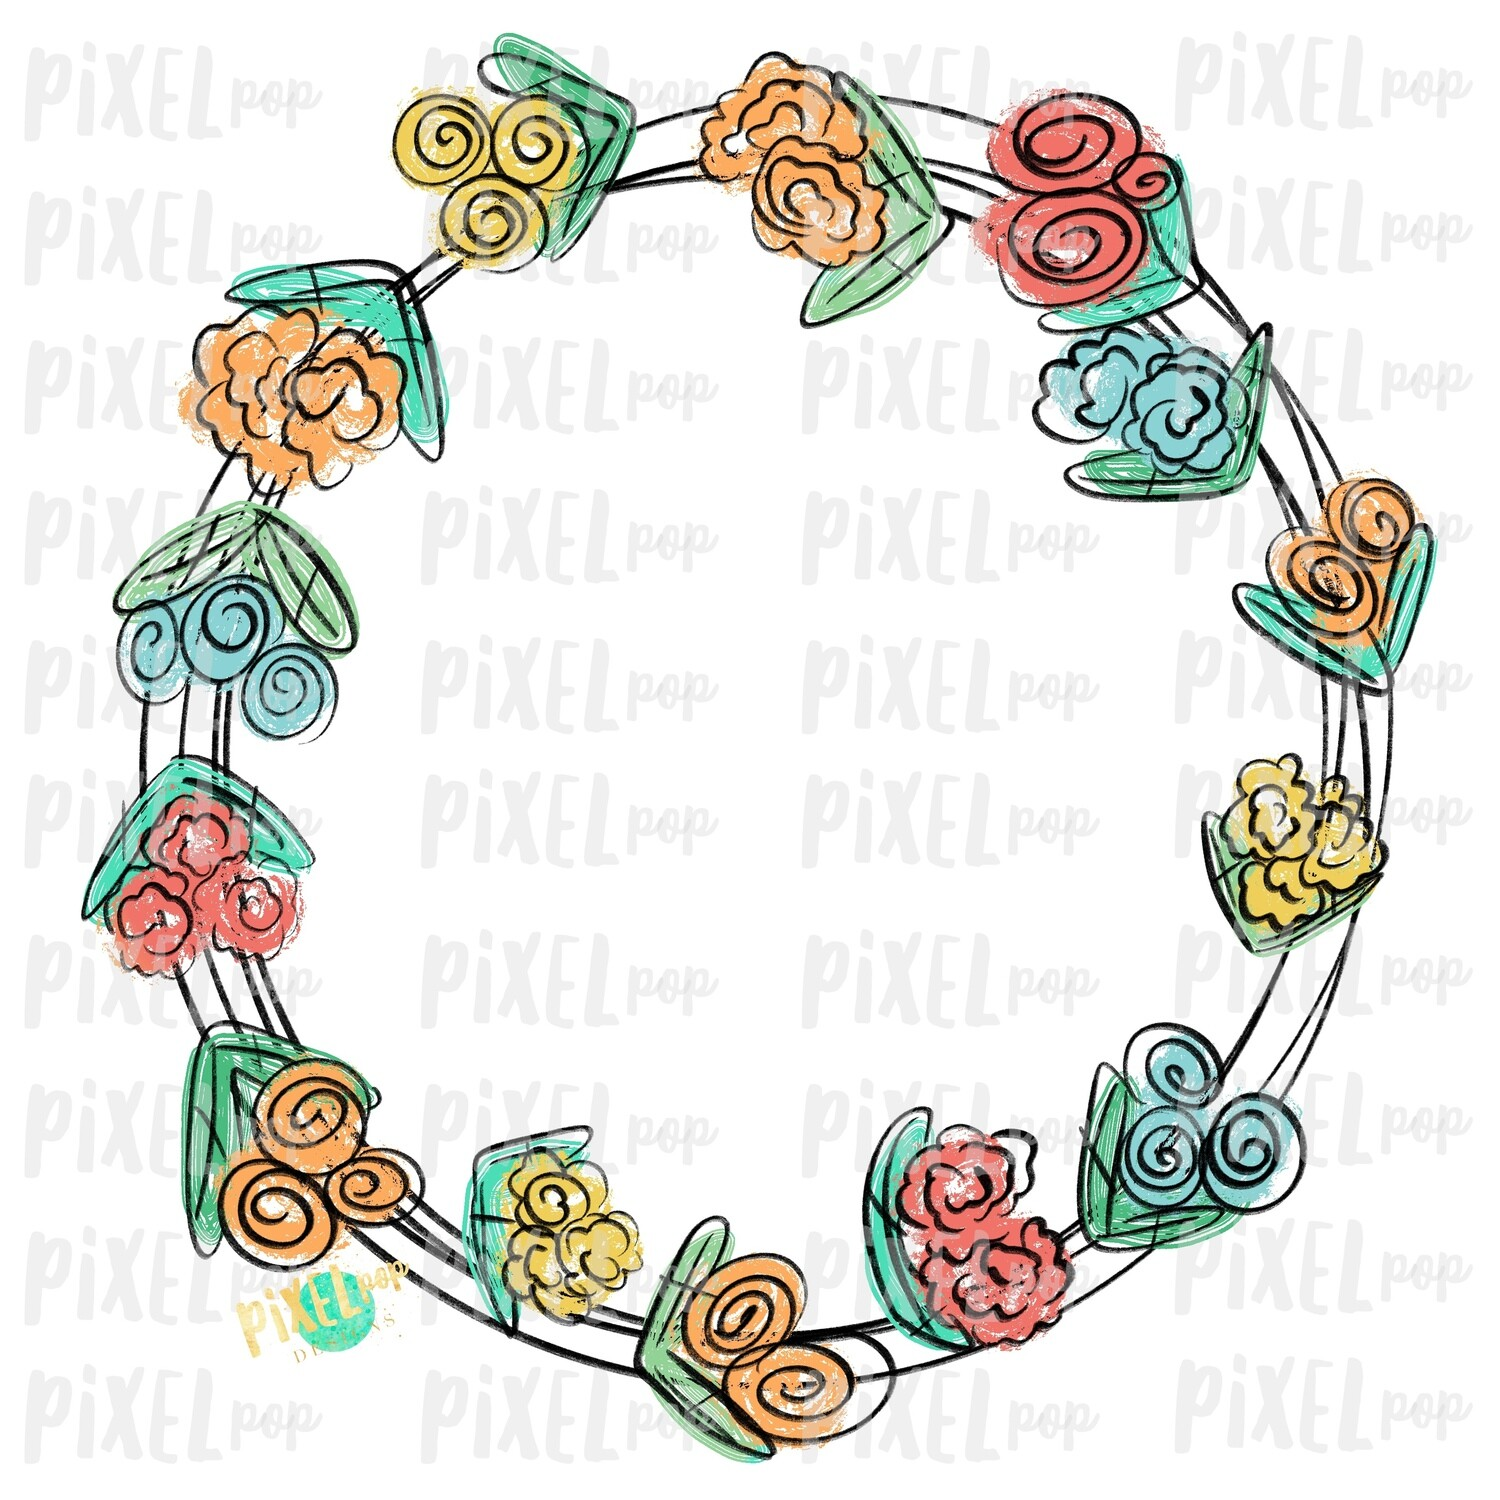 Scribble Flowers Wreath Sublimation Design PNG | Digital Painting | Spring Flowers Design | Flower Wreath | Watercolor Floral Art